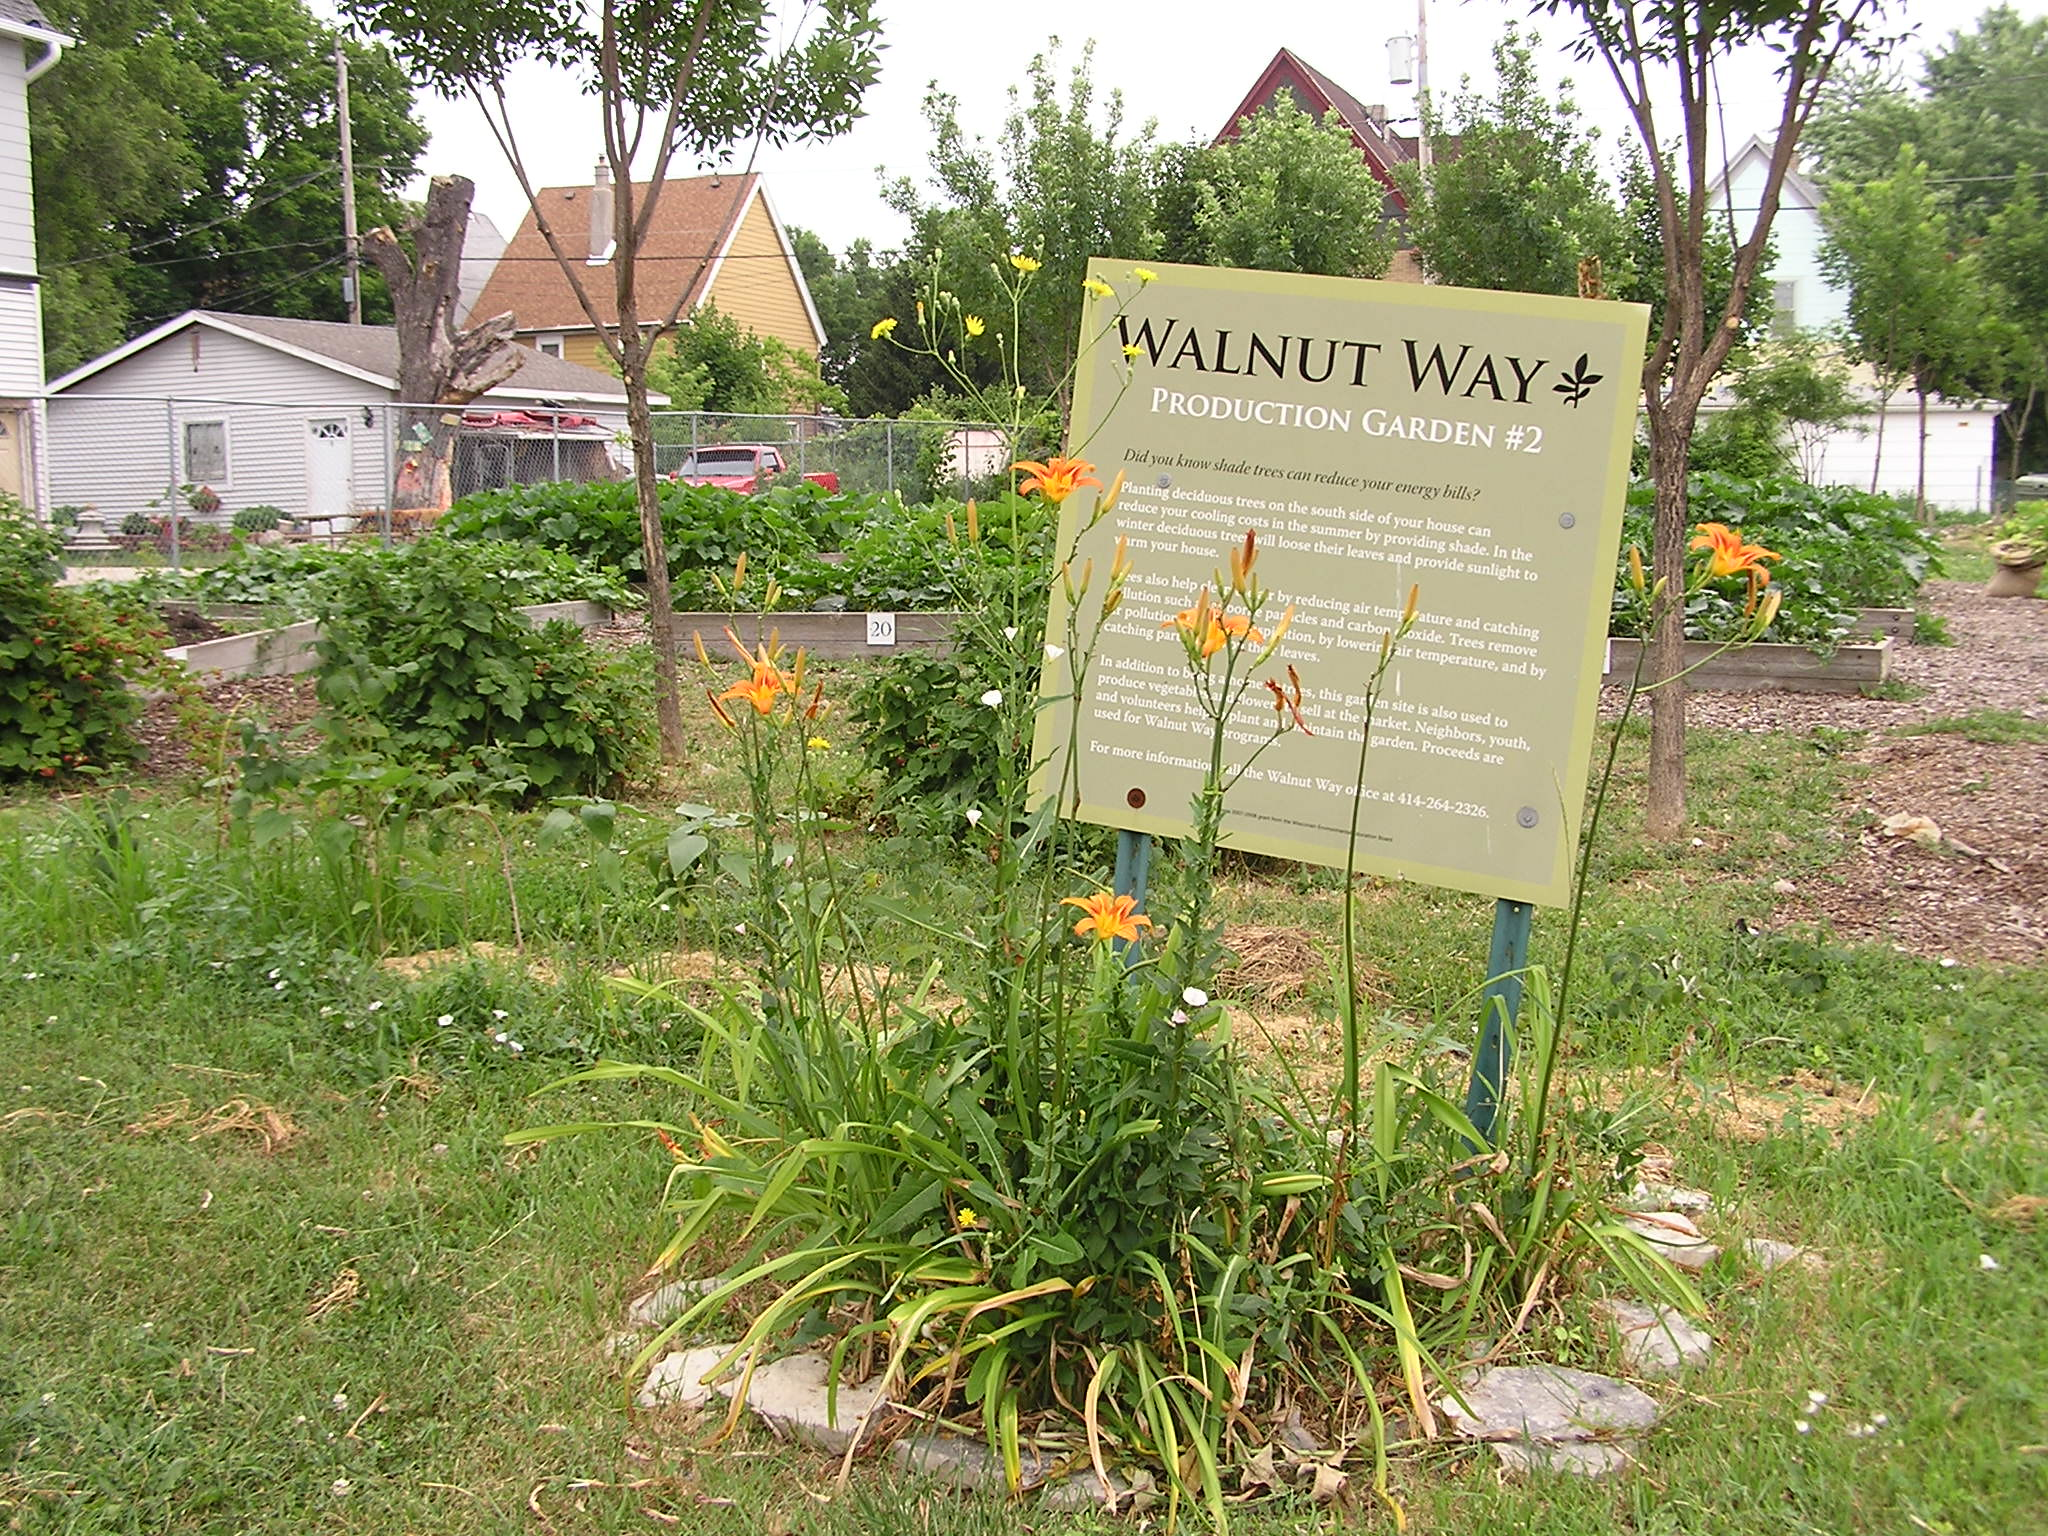 The Walnut Way Conservation Corp. transforms vacant lots into community gardens, many of them cared for by area students.